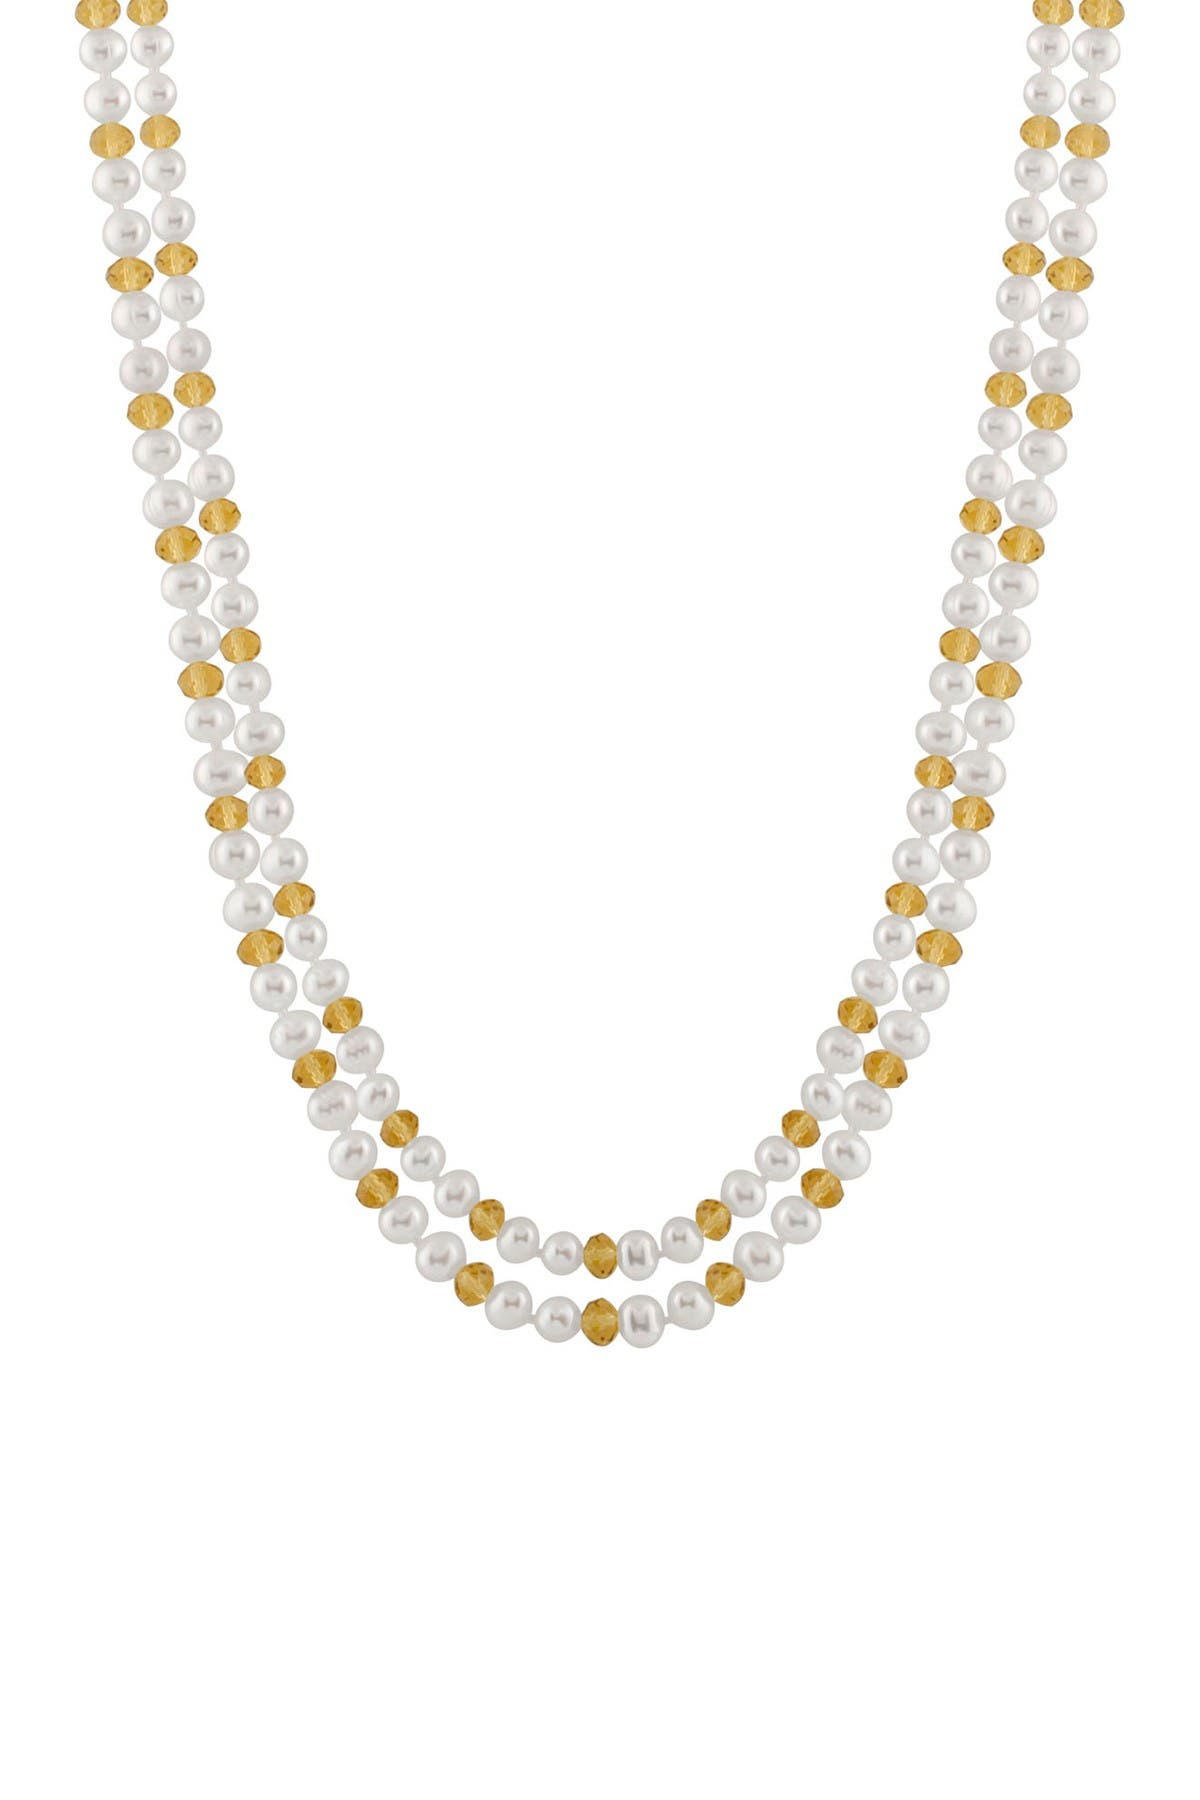 Image of Splendid Pearls Endless Bead & Natural White 6-7mm Cultured Freshwater Pearl Necklace